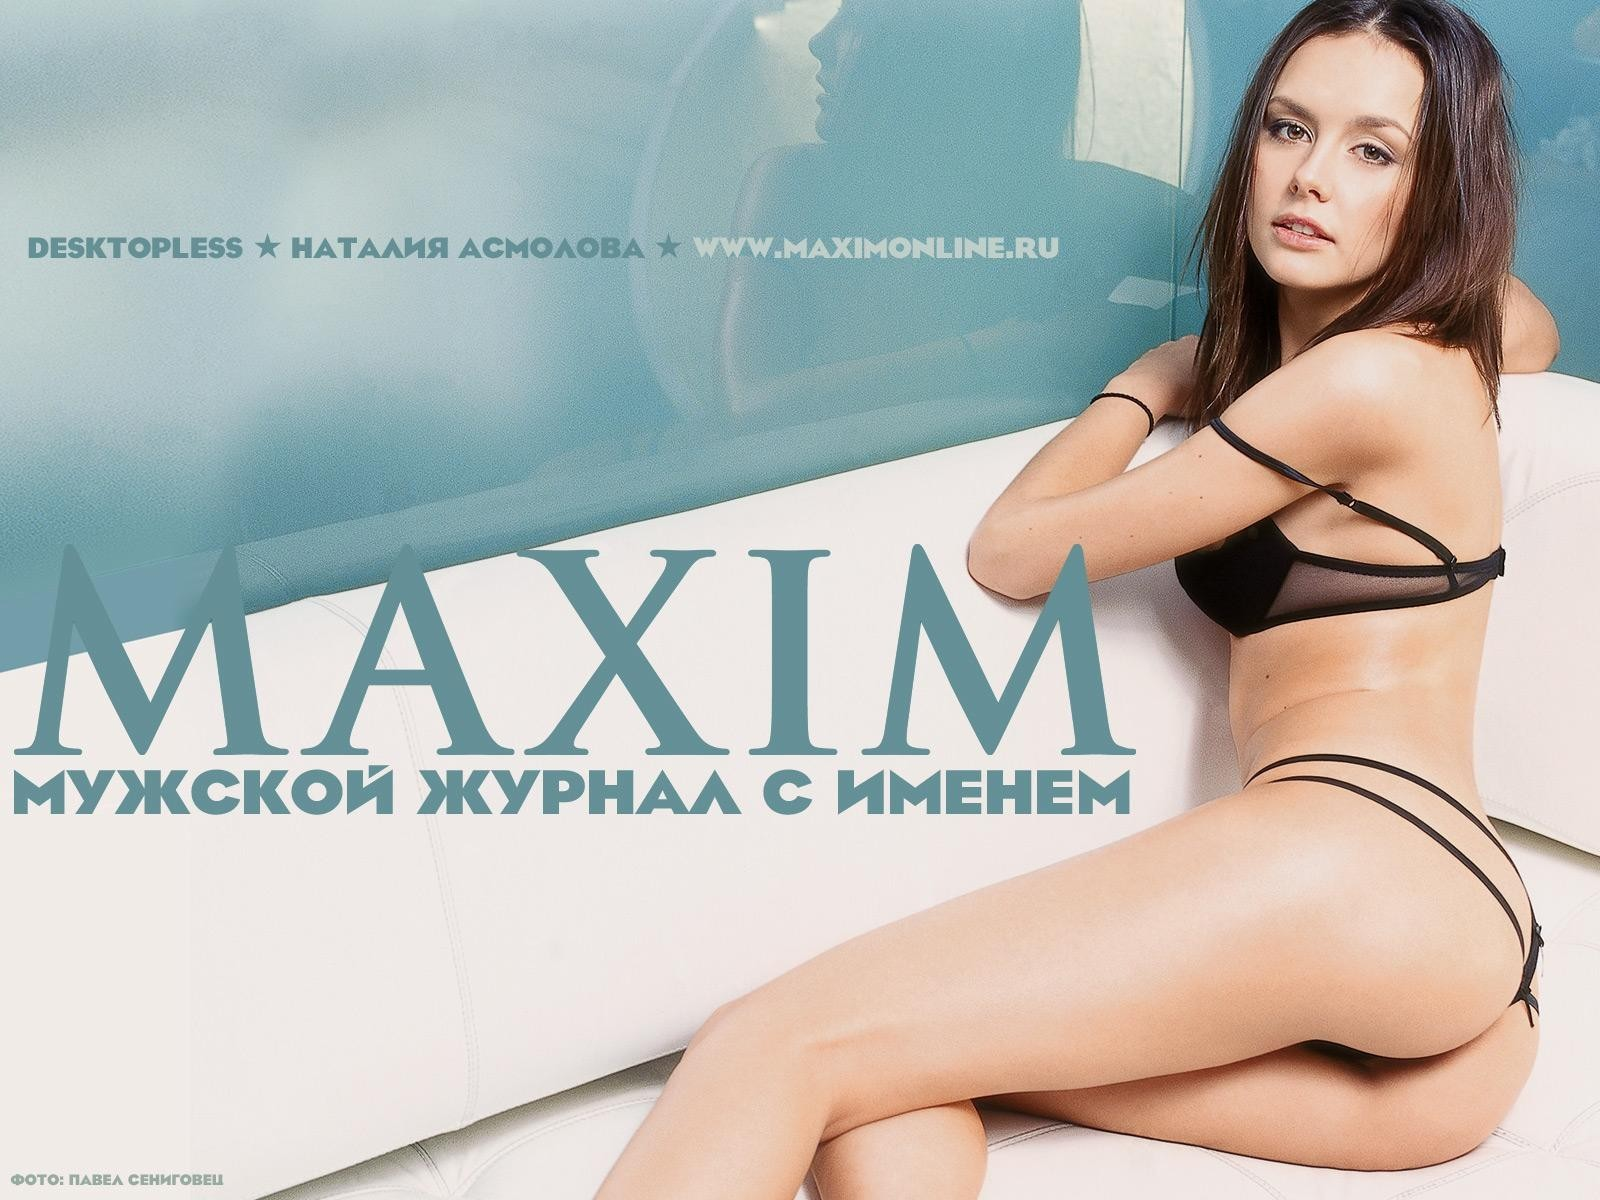 woman Maxim magazine HD Wallpaper